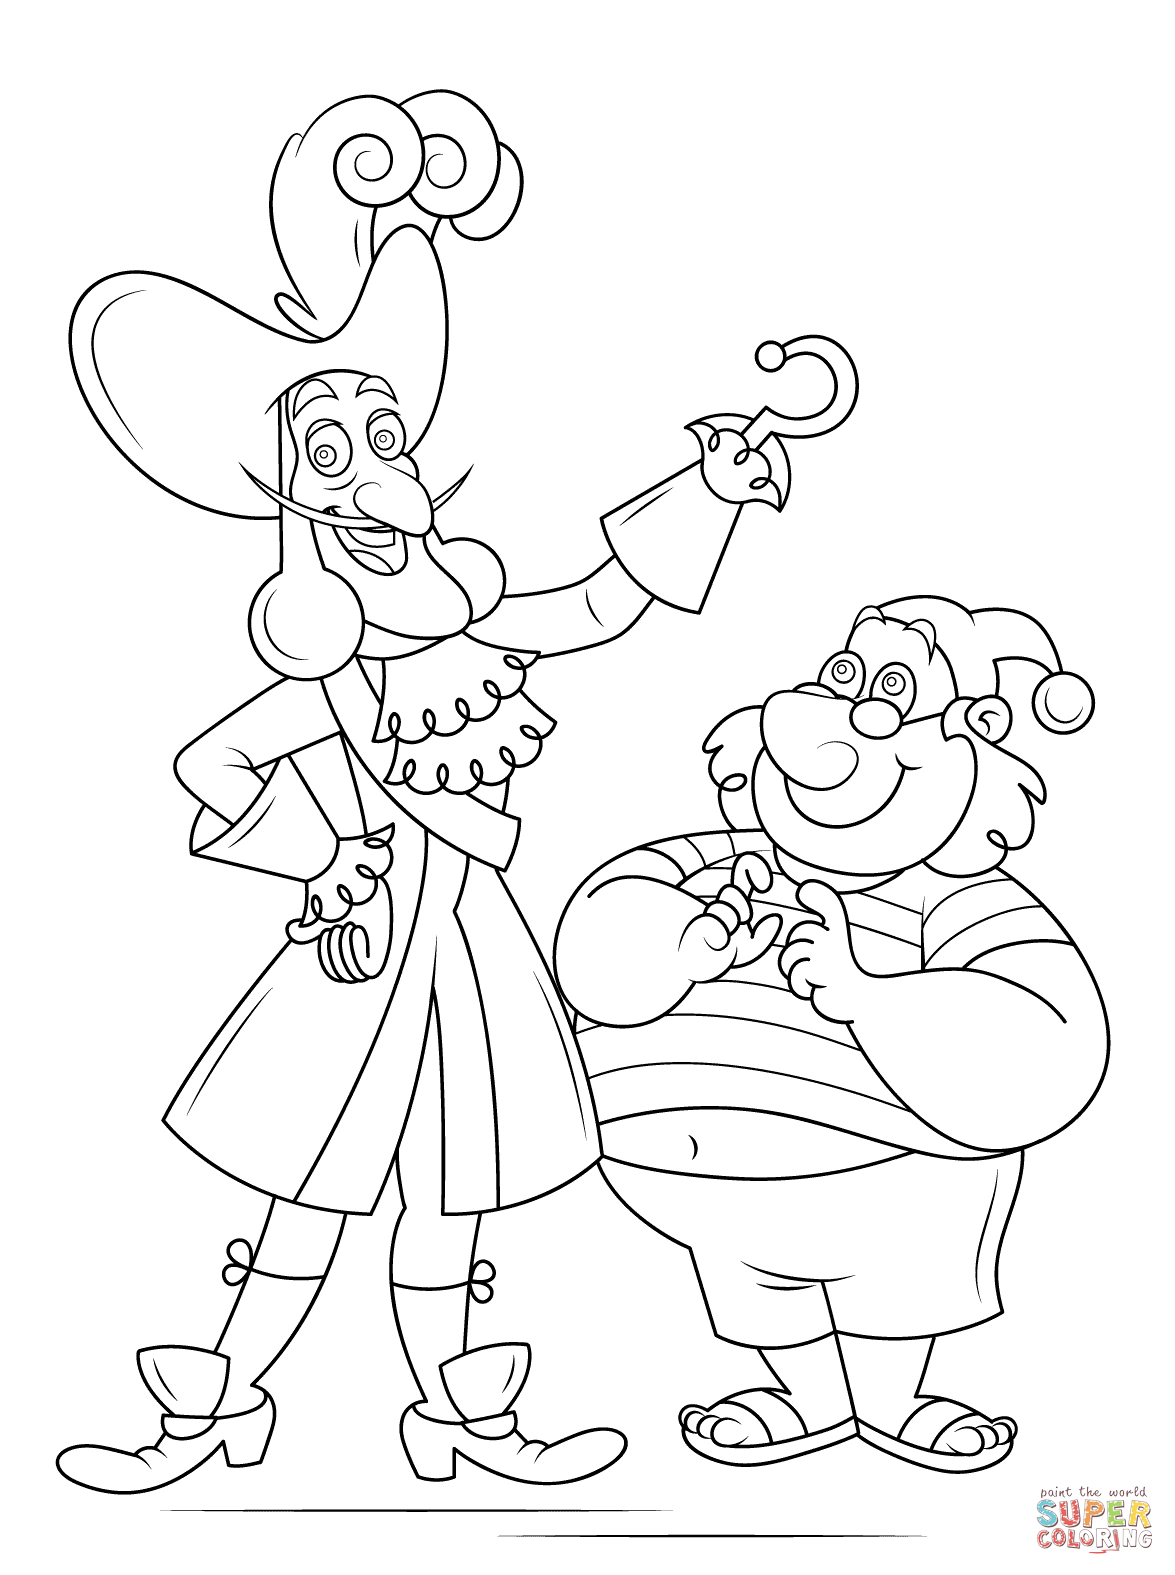 Captain Hook And Mr Smee Super Coloring Peter Pan Coloring Pages Pirate Coloring Pages Tinkerbell Coloring Pages [ png ]